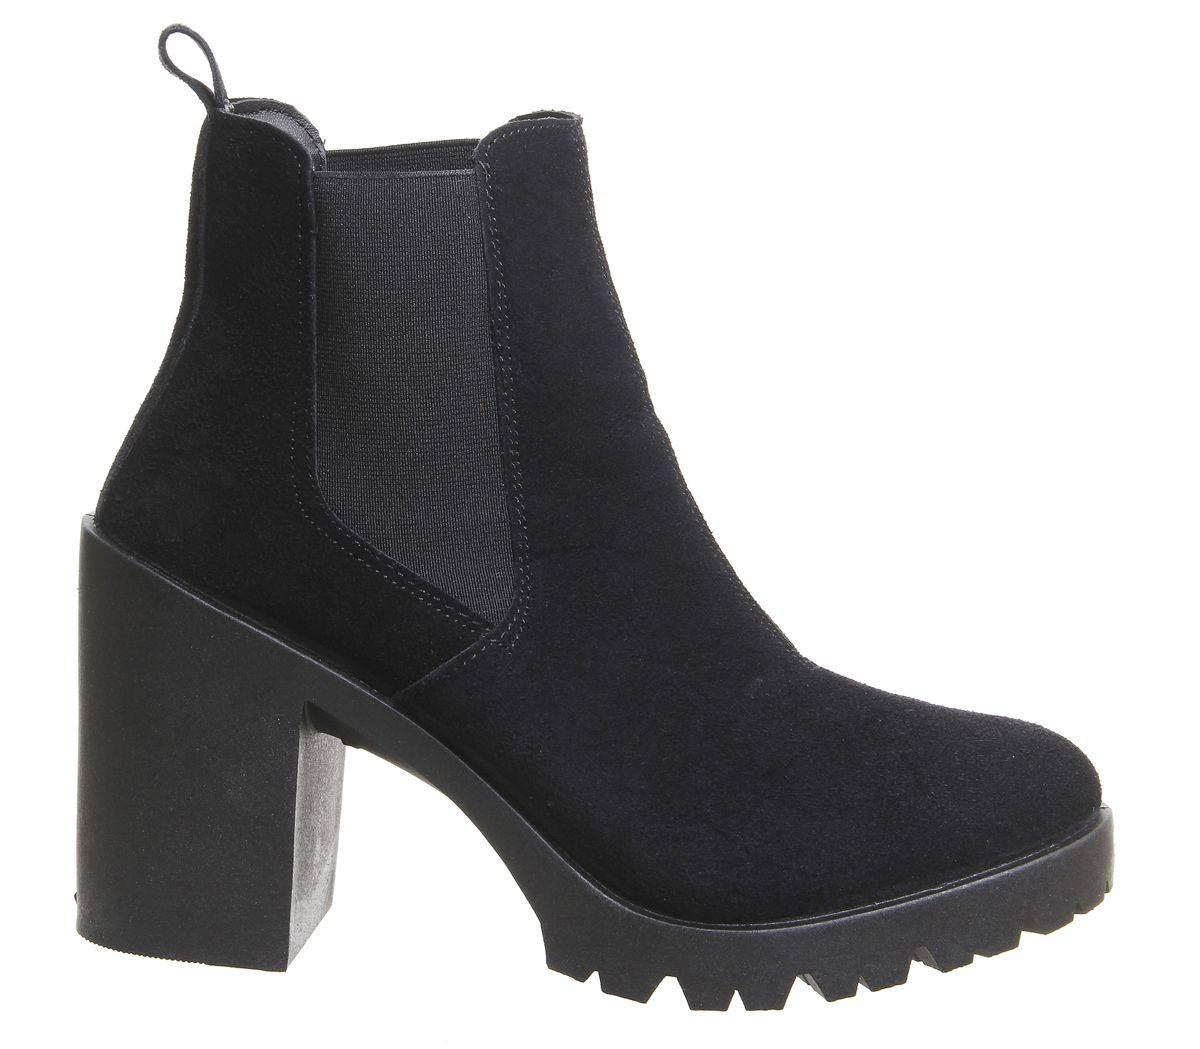 0f1b306e215 Office Ashlyn Chunky Heeled Chelsea Boots Black Suede - Ankle Boots